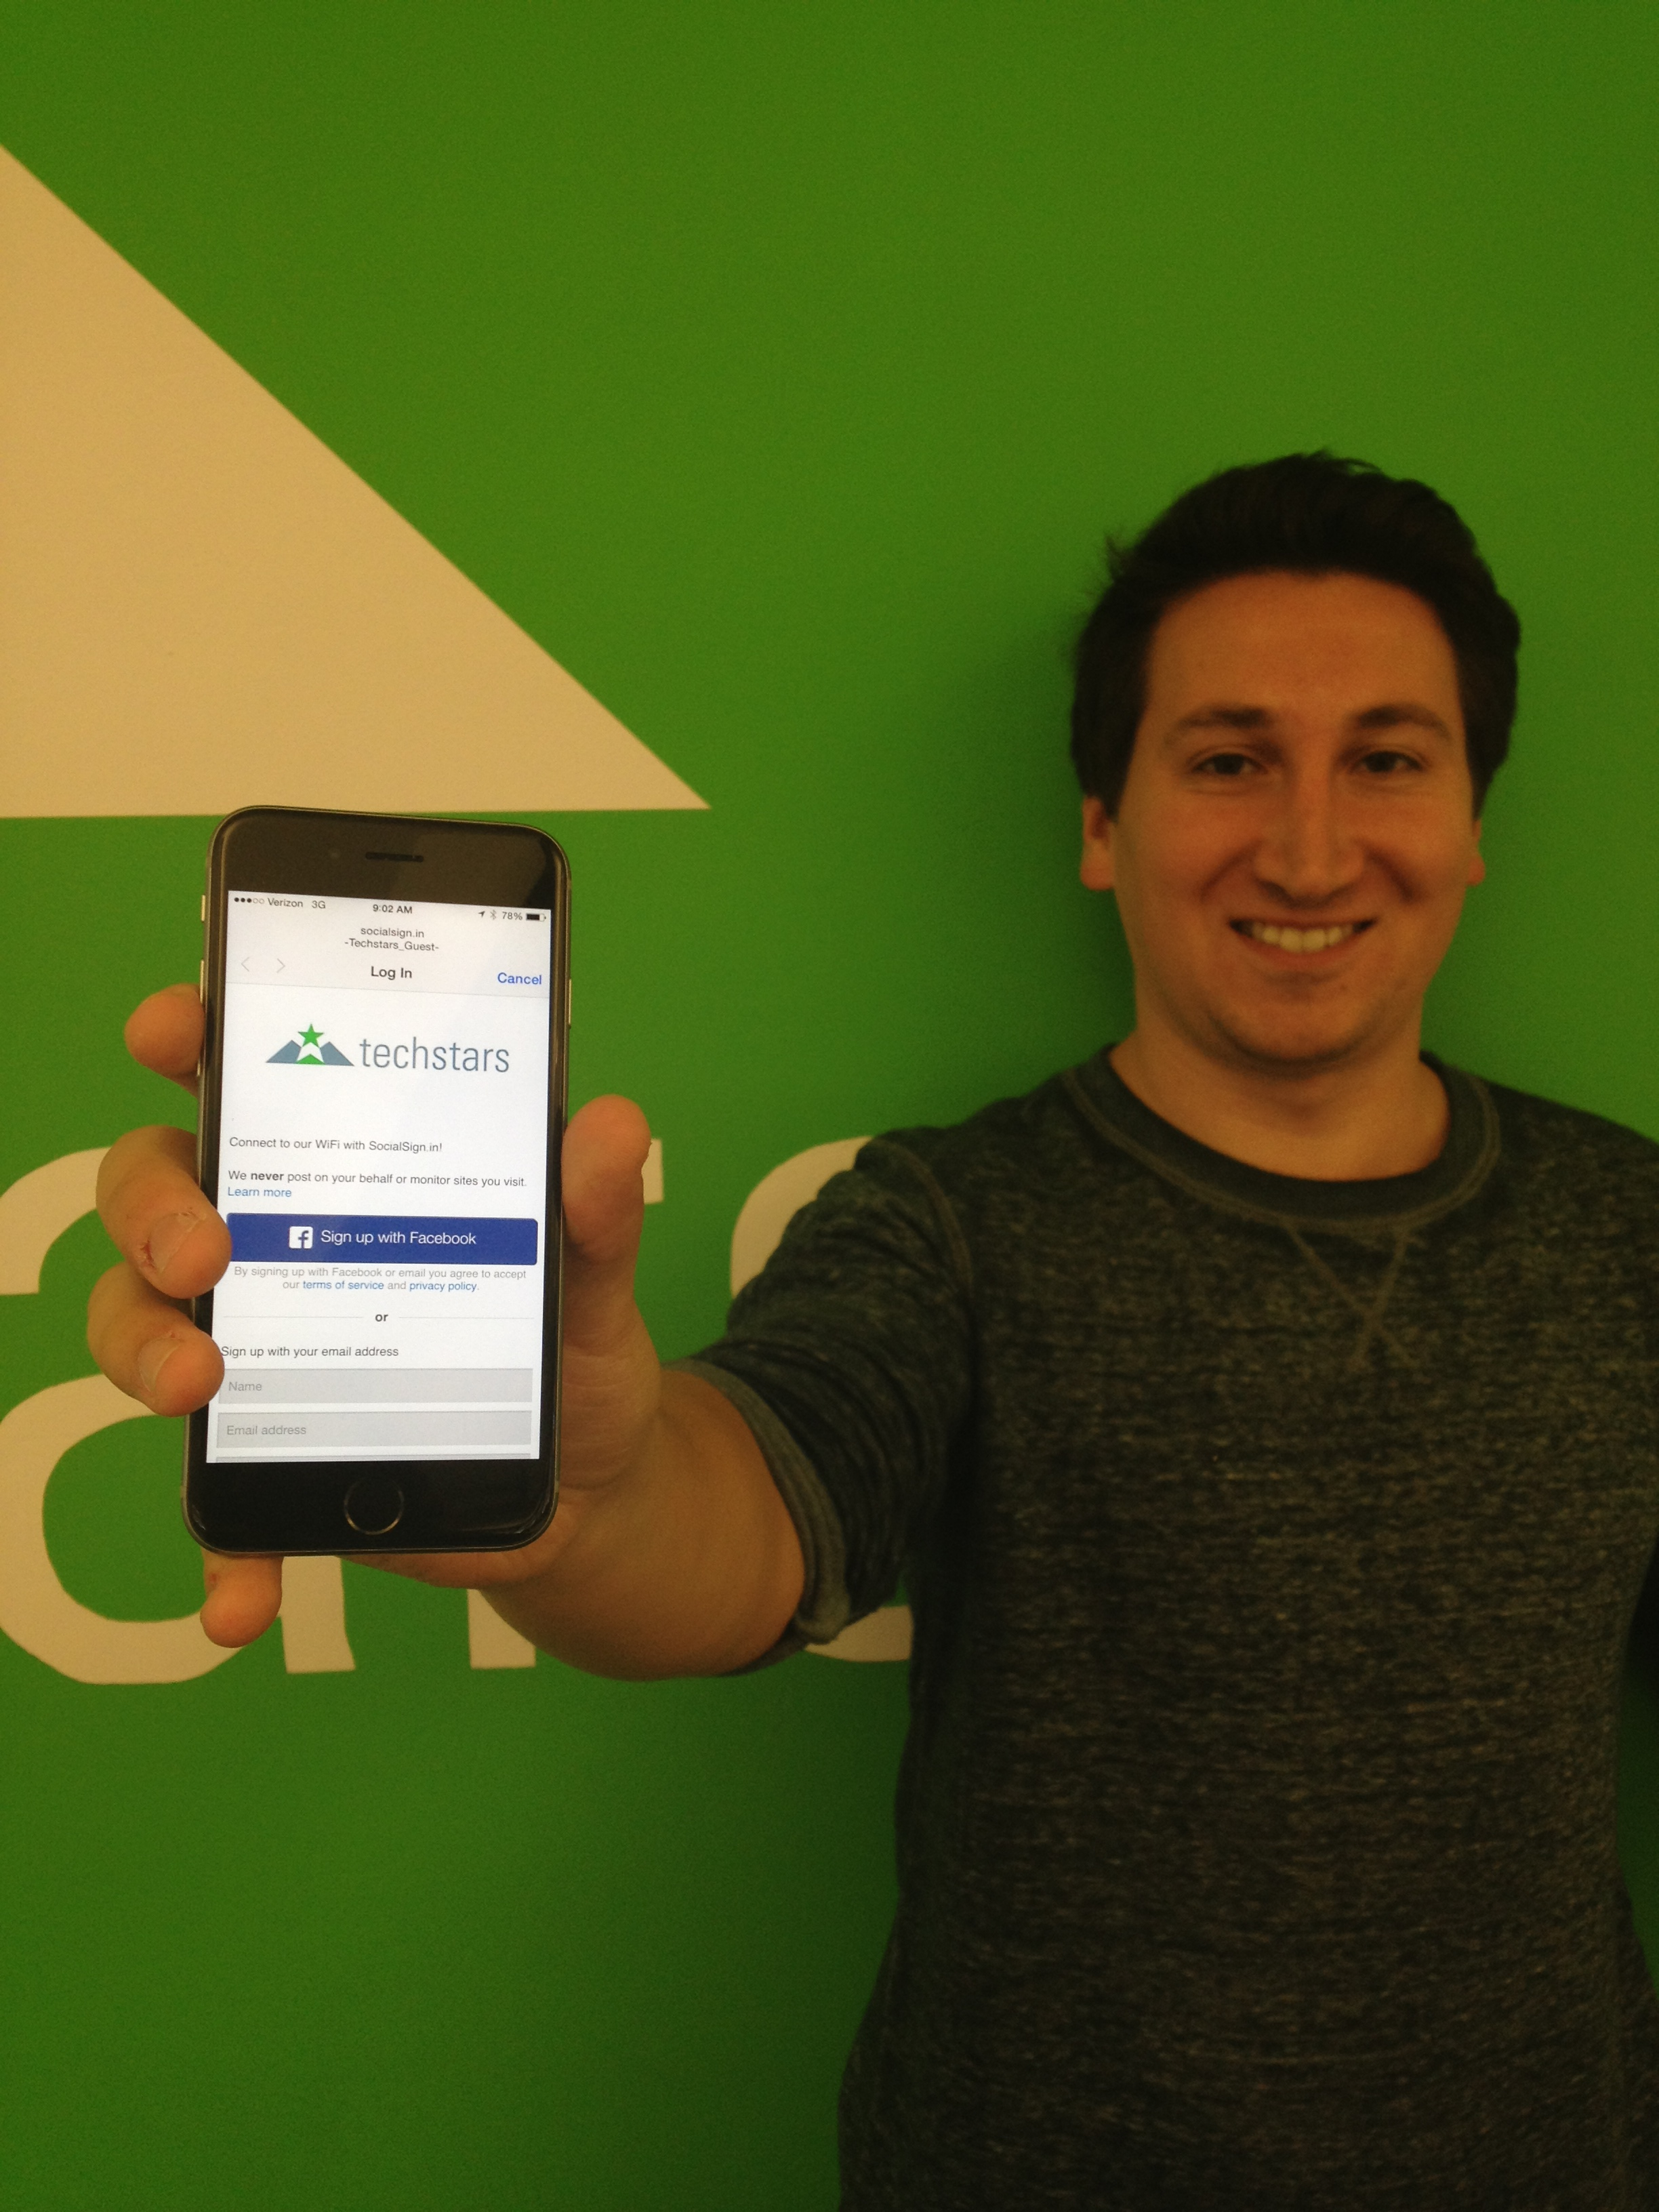 Our Marketing Manager, @Freidlin, with his new iPhone 6.